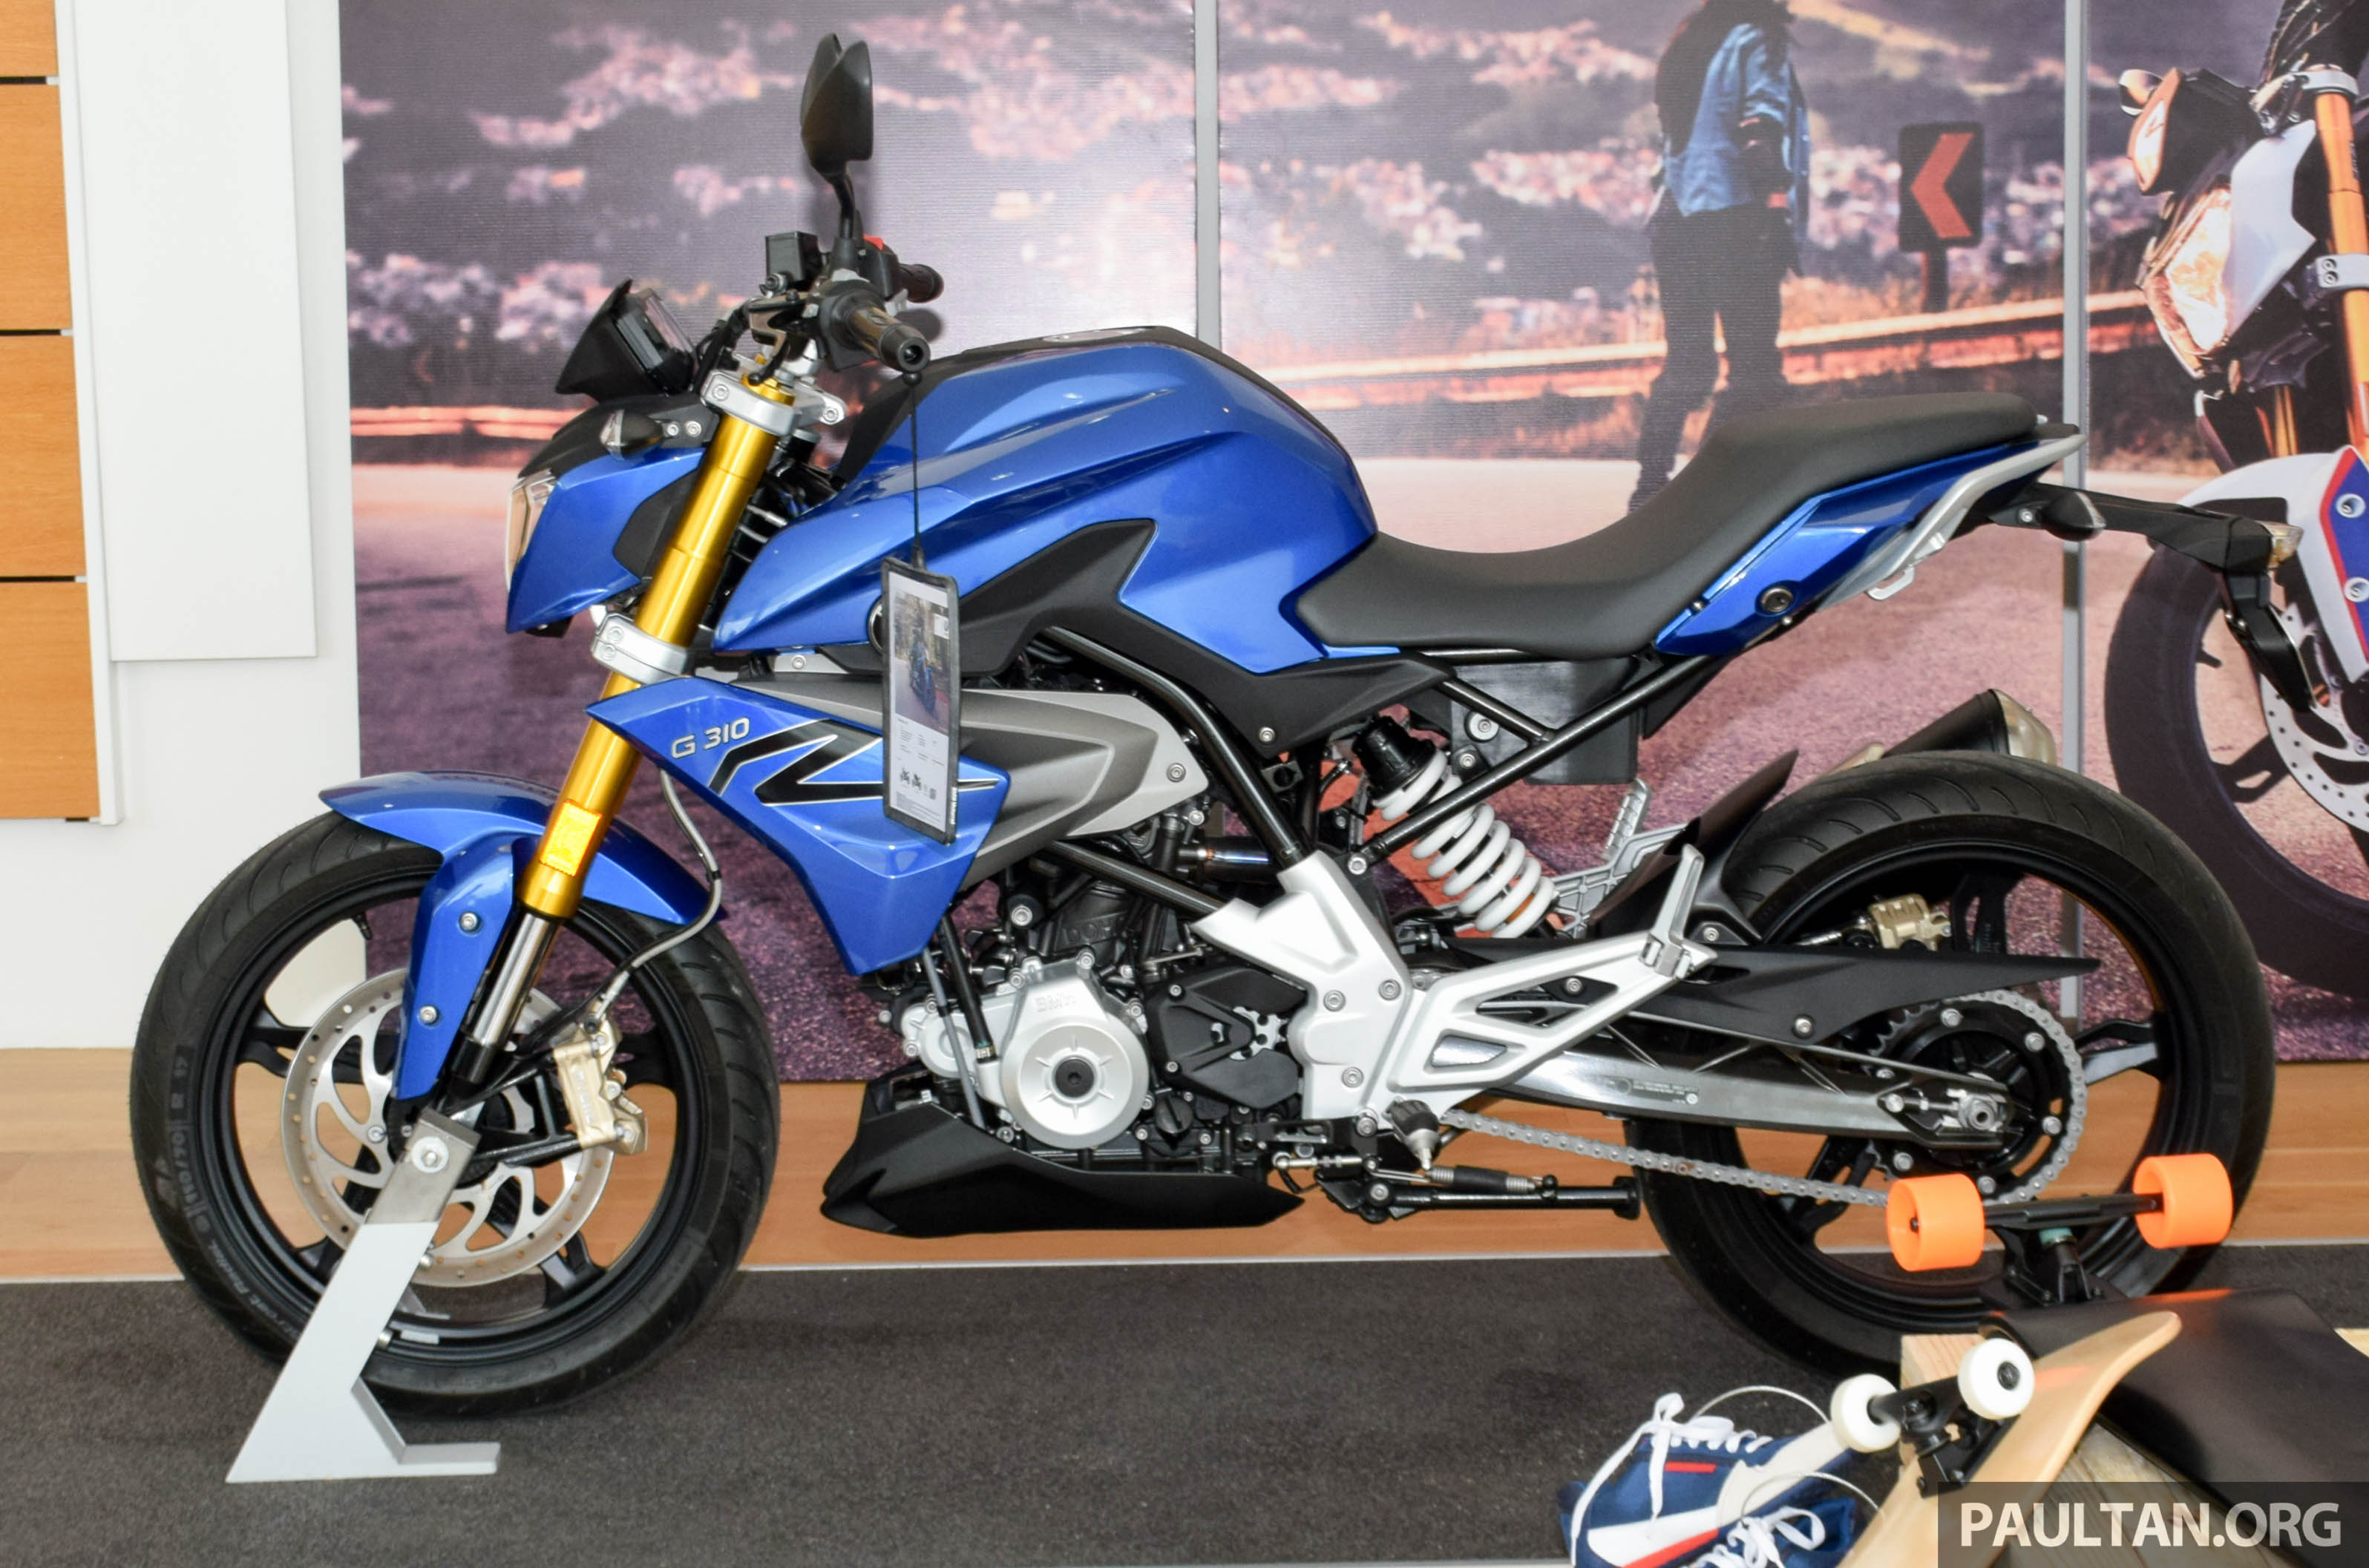 2016 Bmw Motorrad G310r Previewed In Malaysia Image 499571